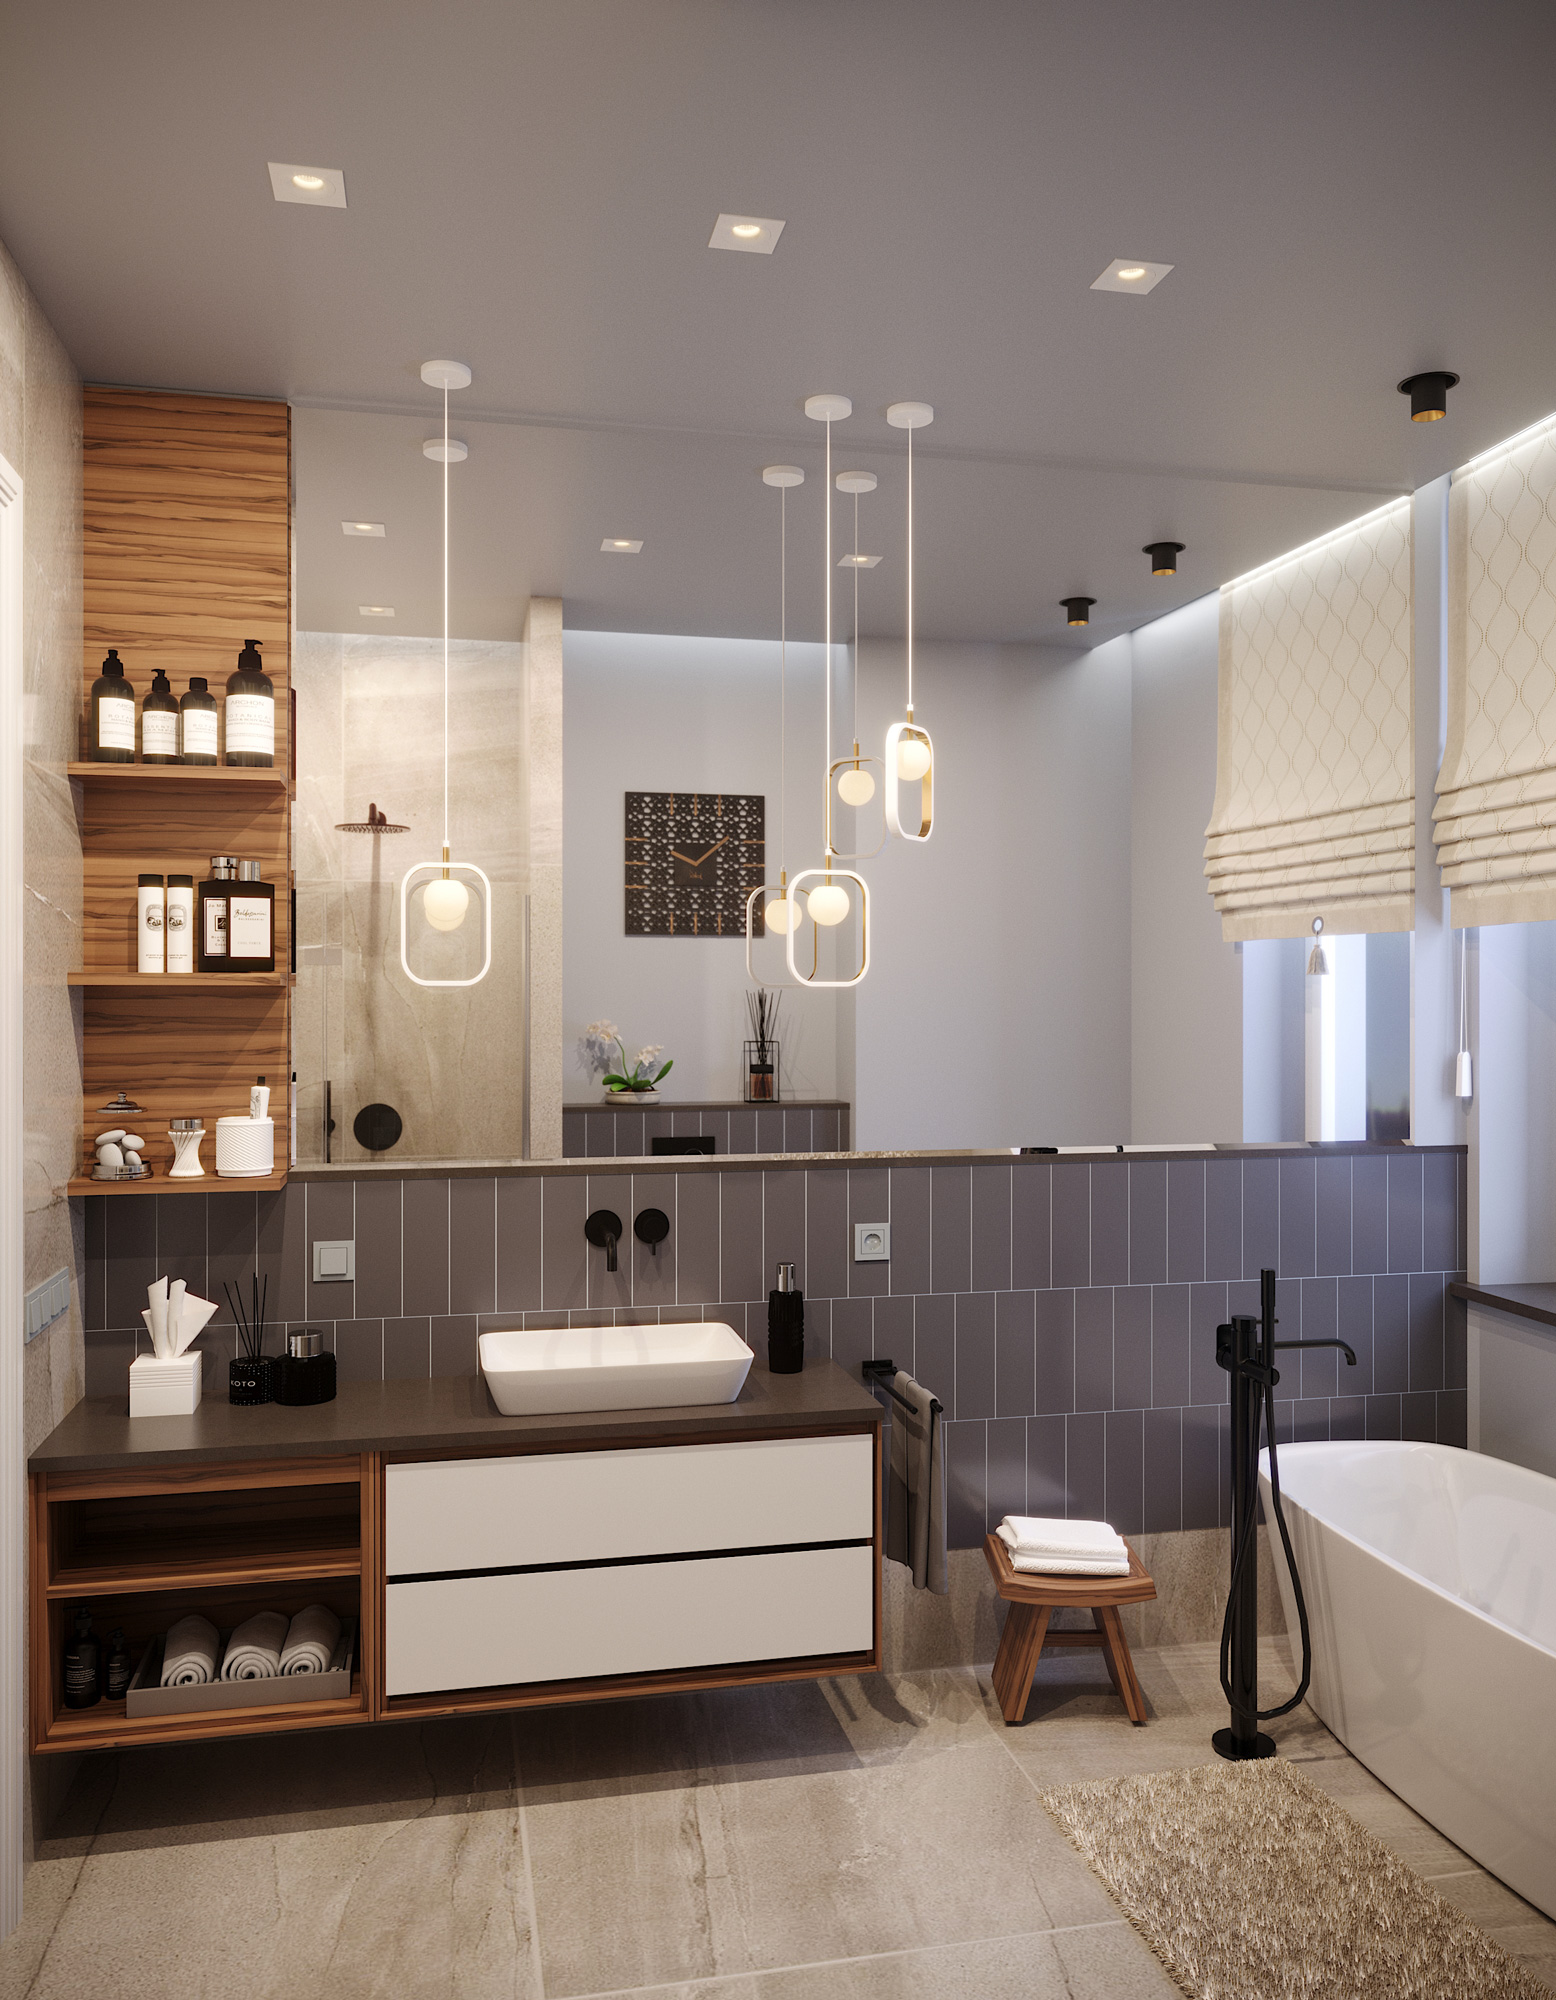 Mednieku 5 3d interior render visualization 01